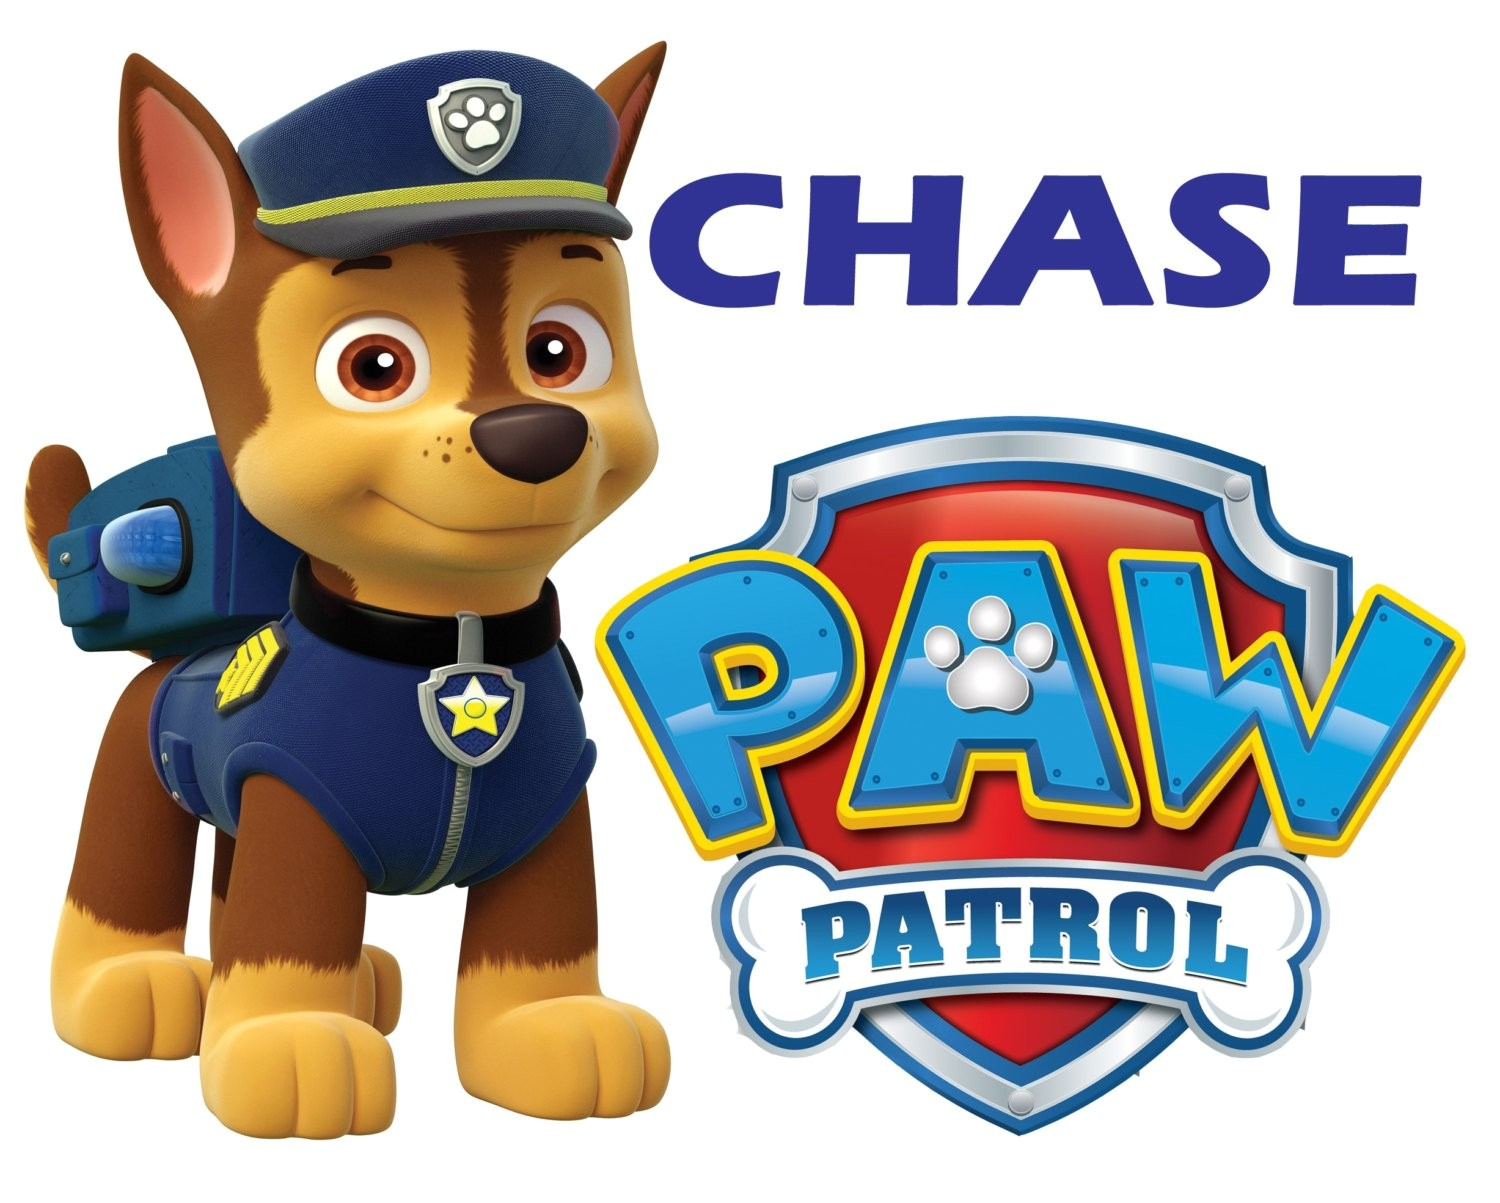 paw patrol chase iron on transfer